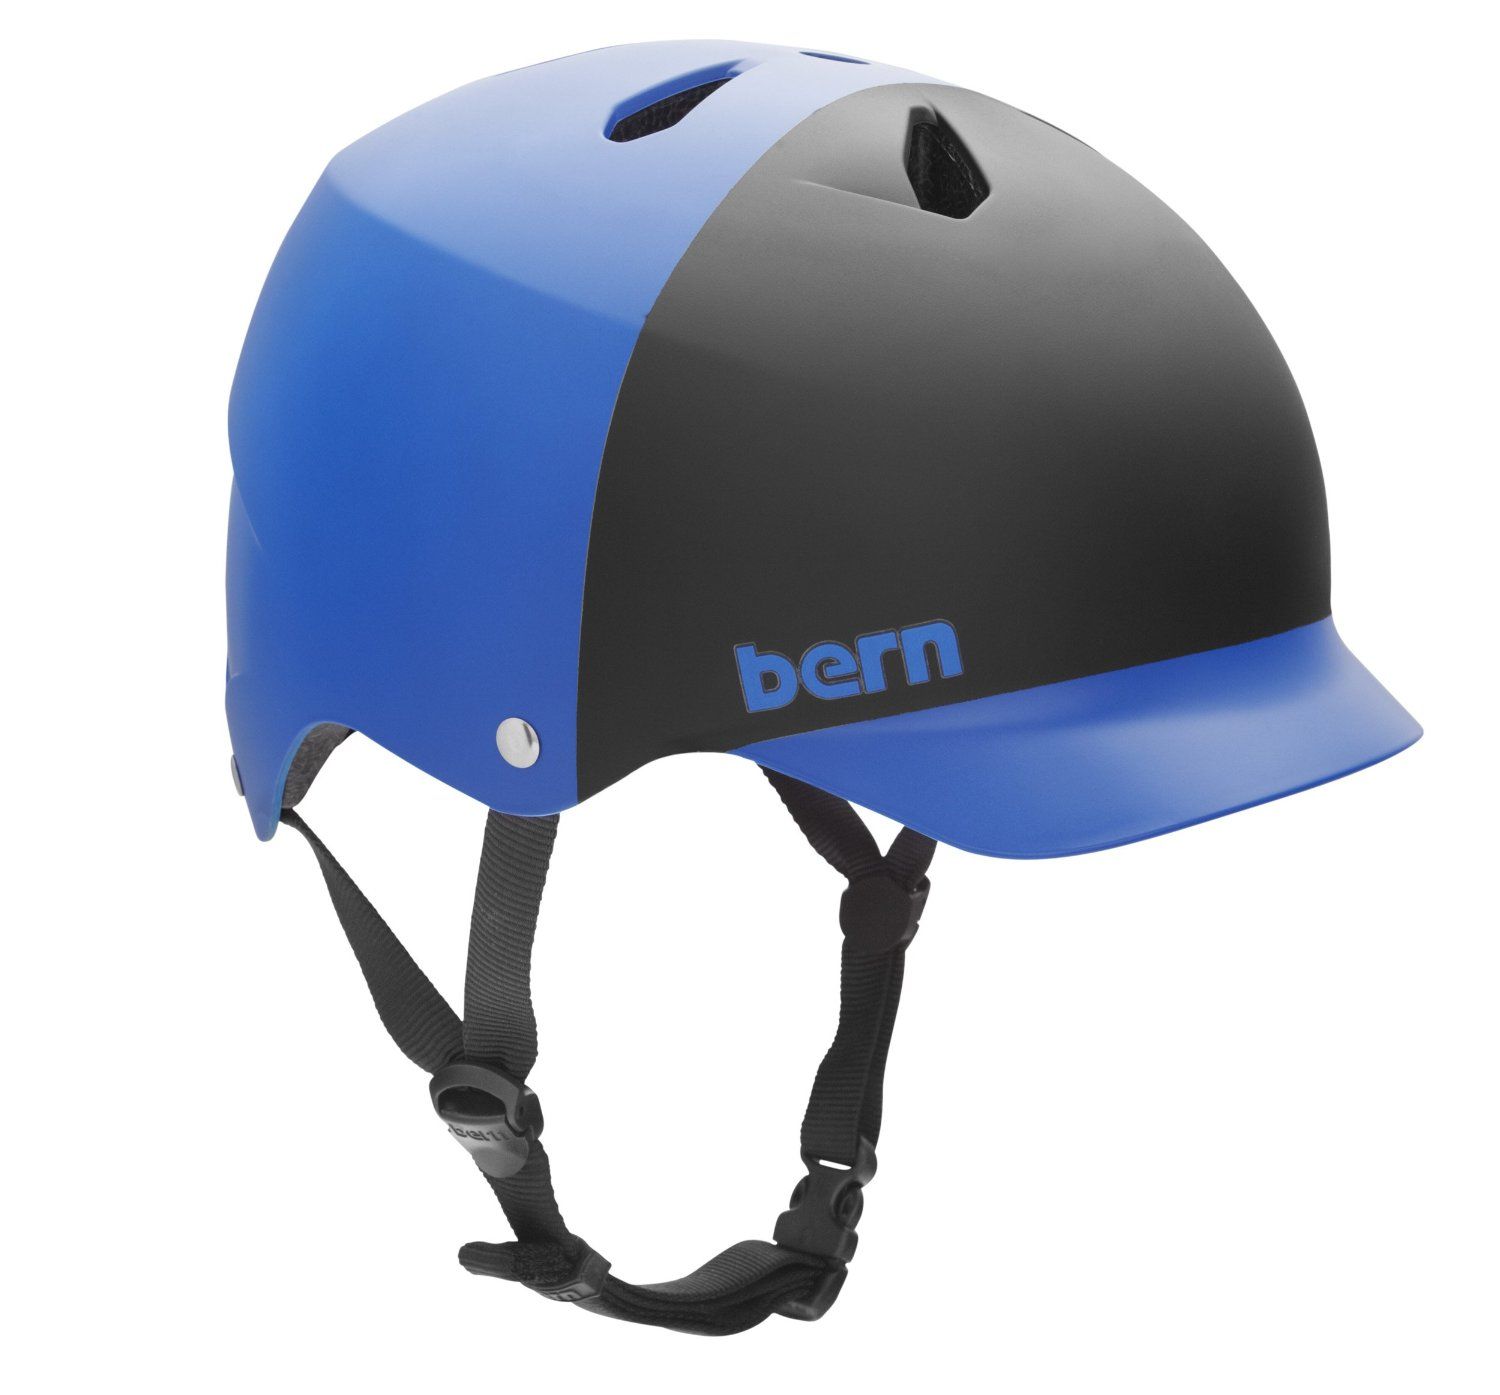 Best Selling Bern Bicycle Helmets